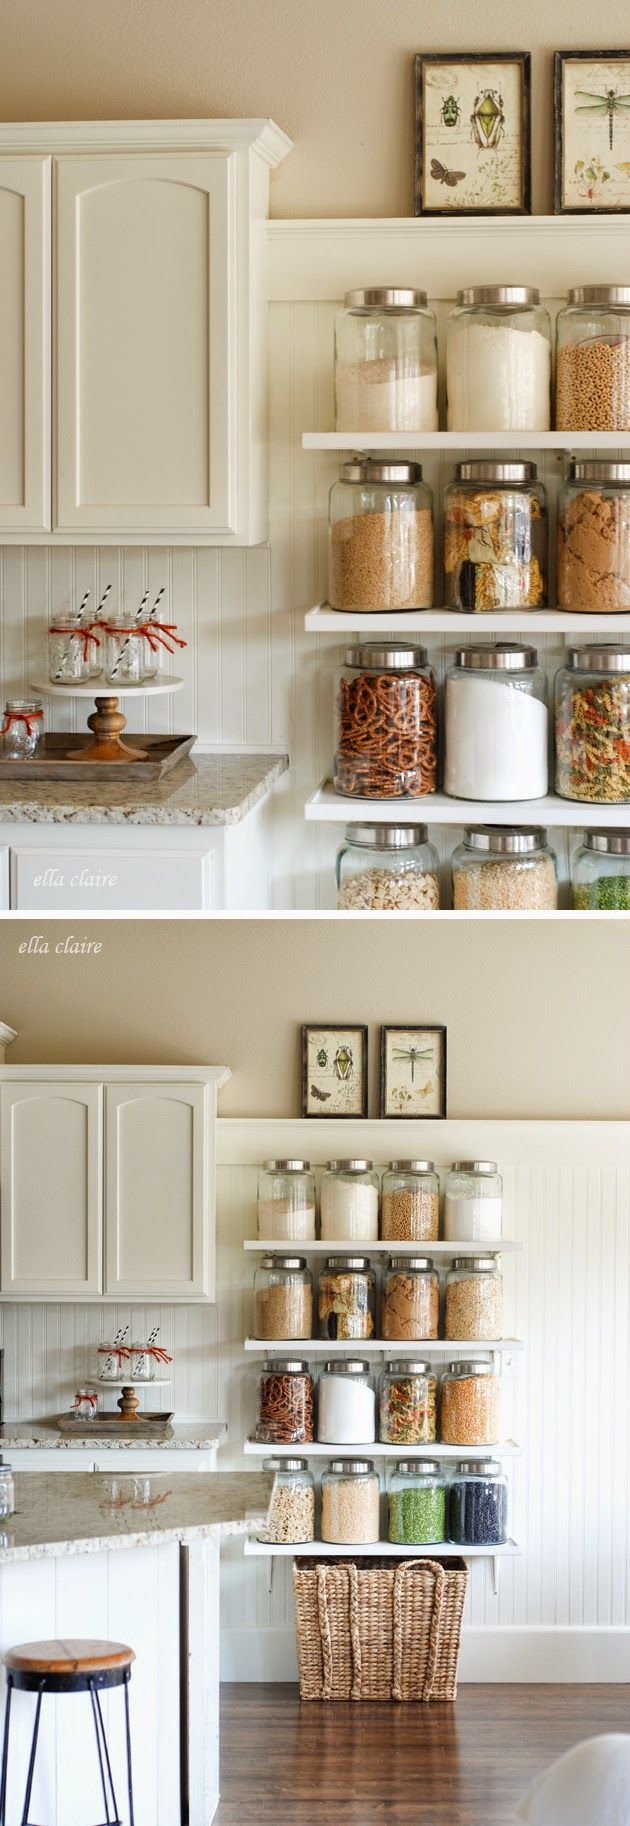 Diy Country Store Kitchen Shelves Glass Canisters